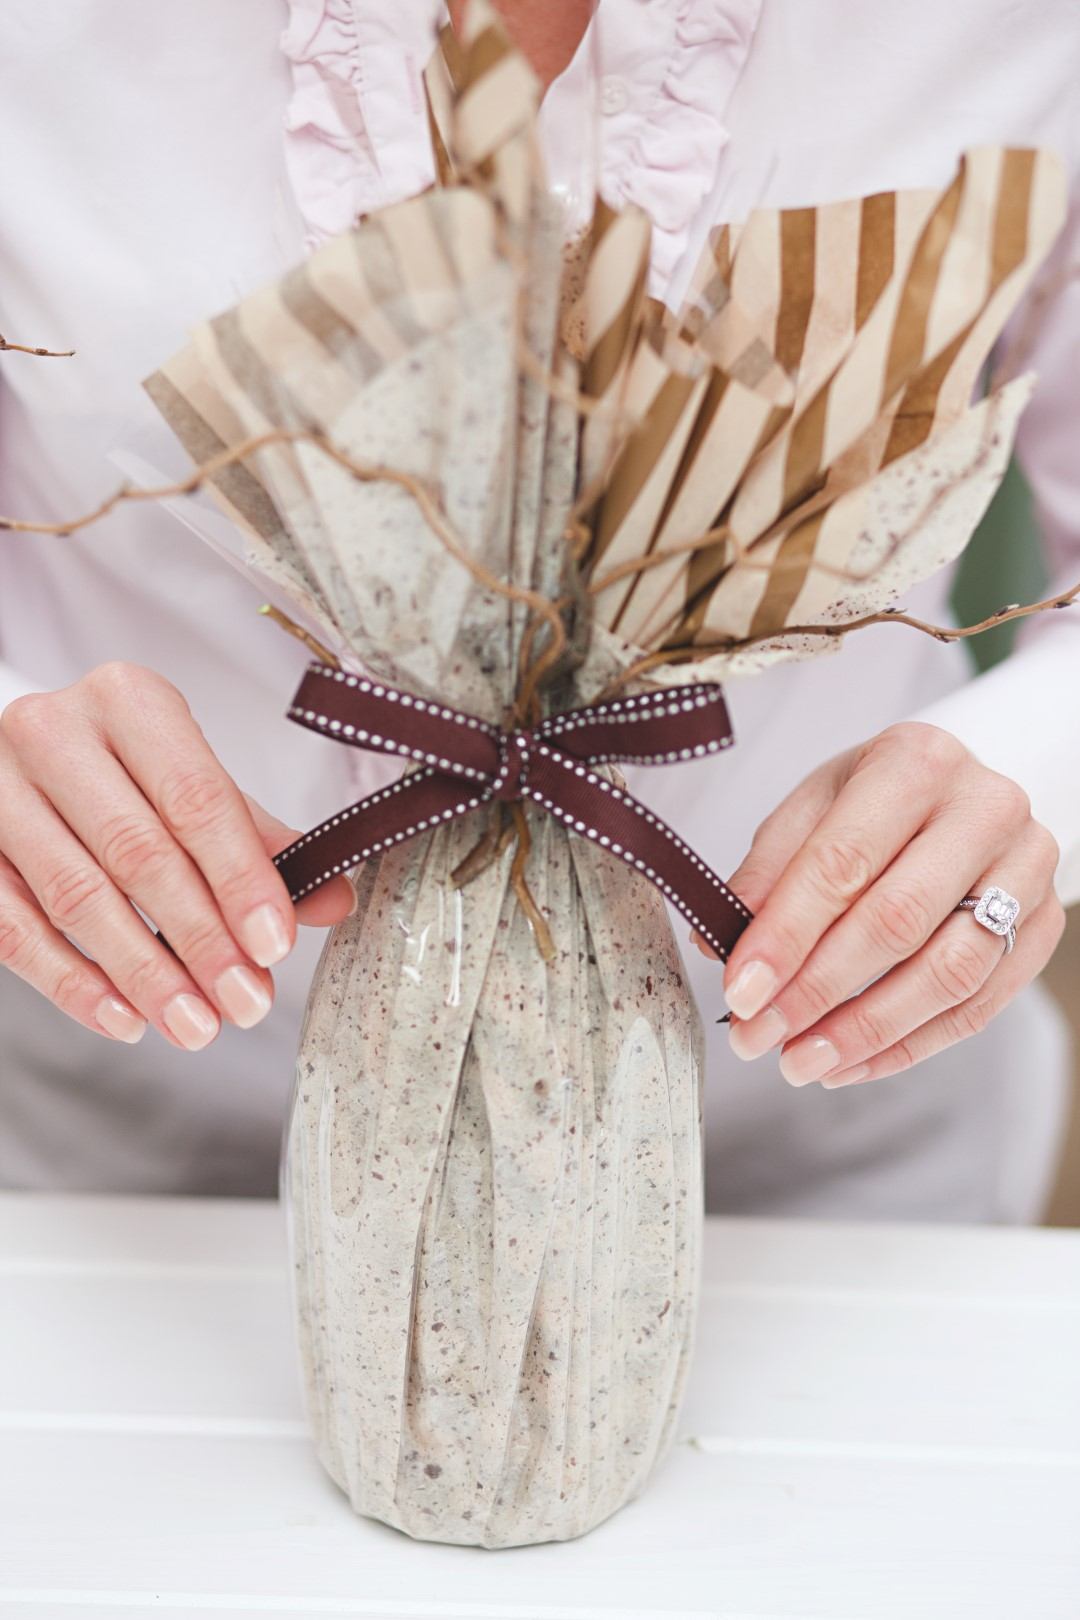 How To Wrap Christmas Presents.How To Gift Wrap Christmas Presents Perfectly With Jane Means